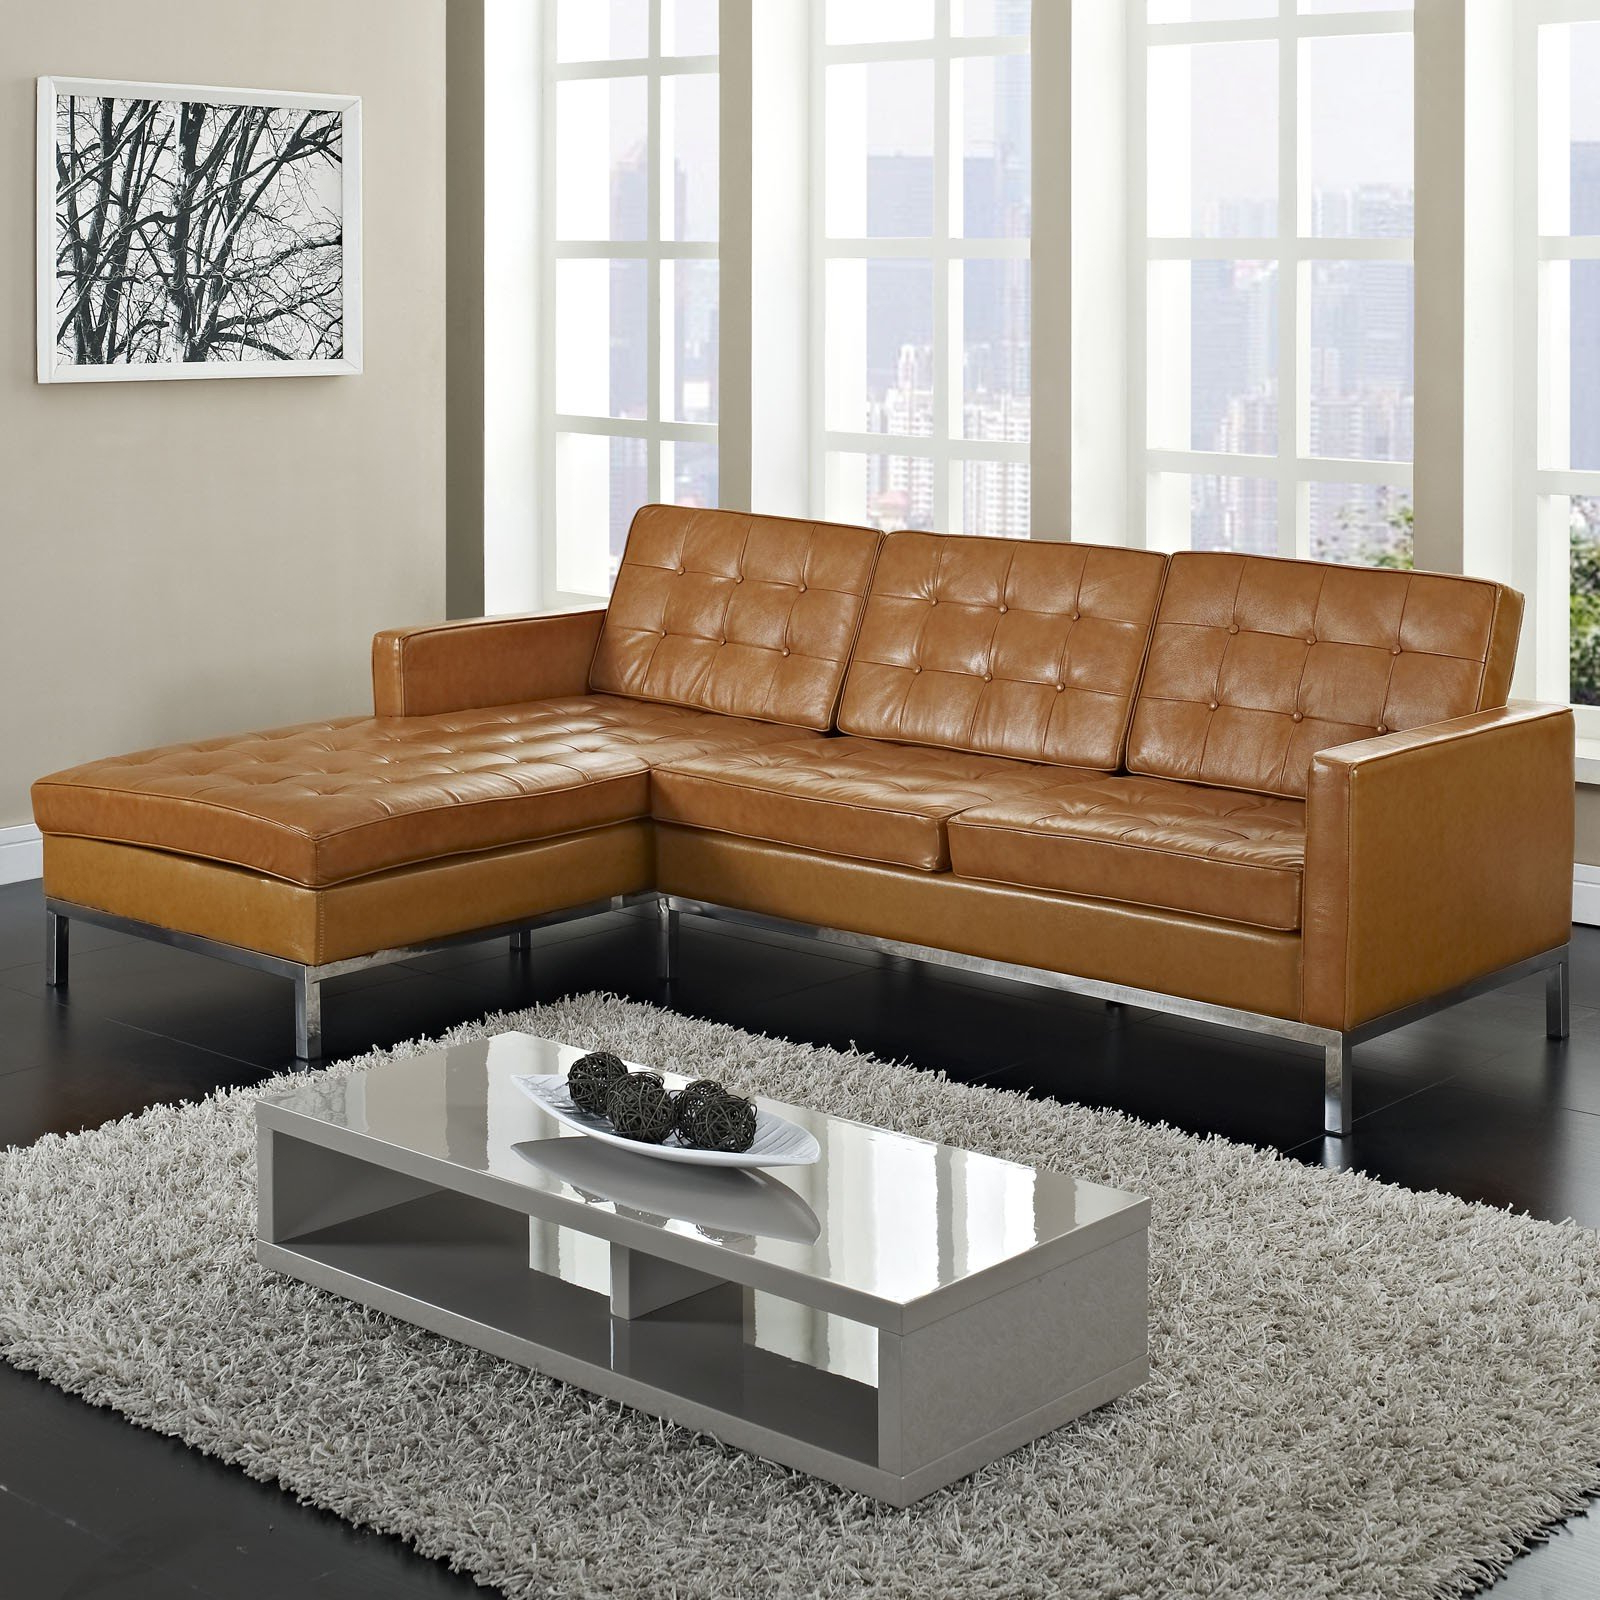 Simple Review About Living Room Furniture: Small Sectional In Favorite Easton Small Space Sectional Futon Sofas (View 12 of 25)